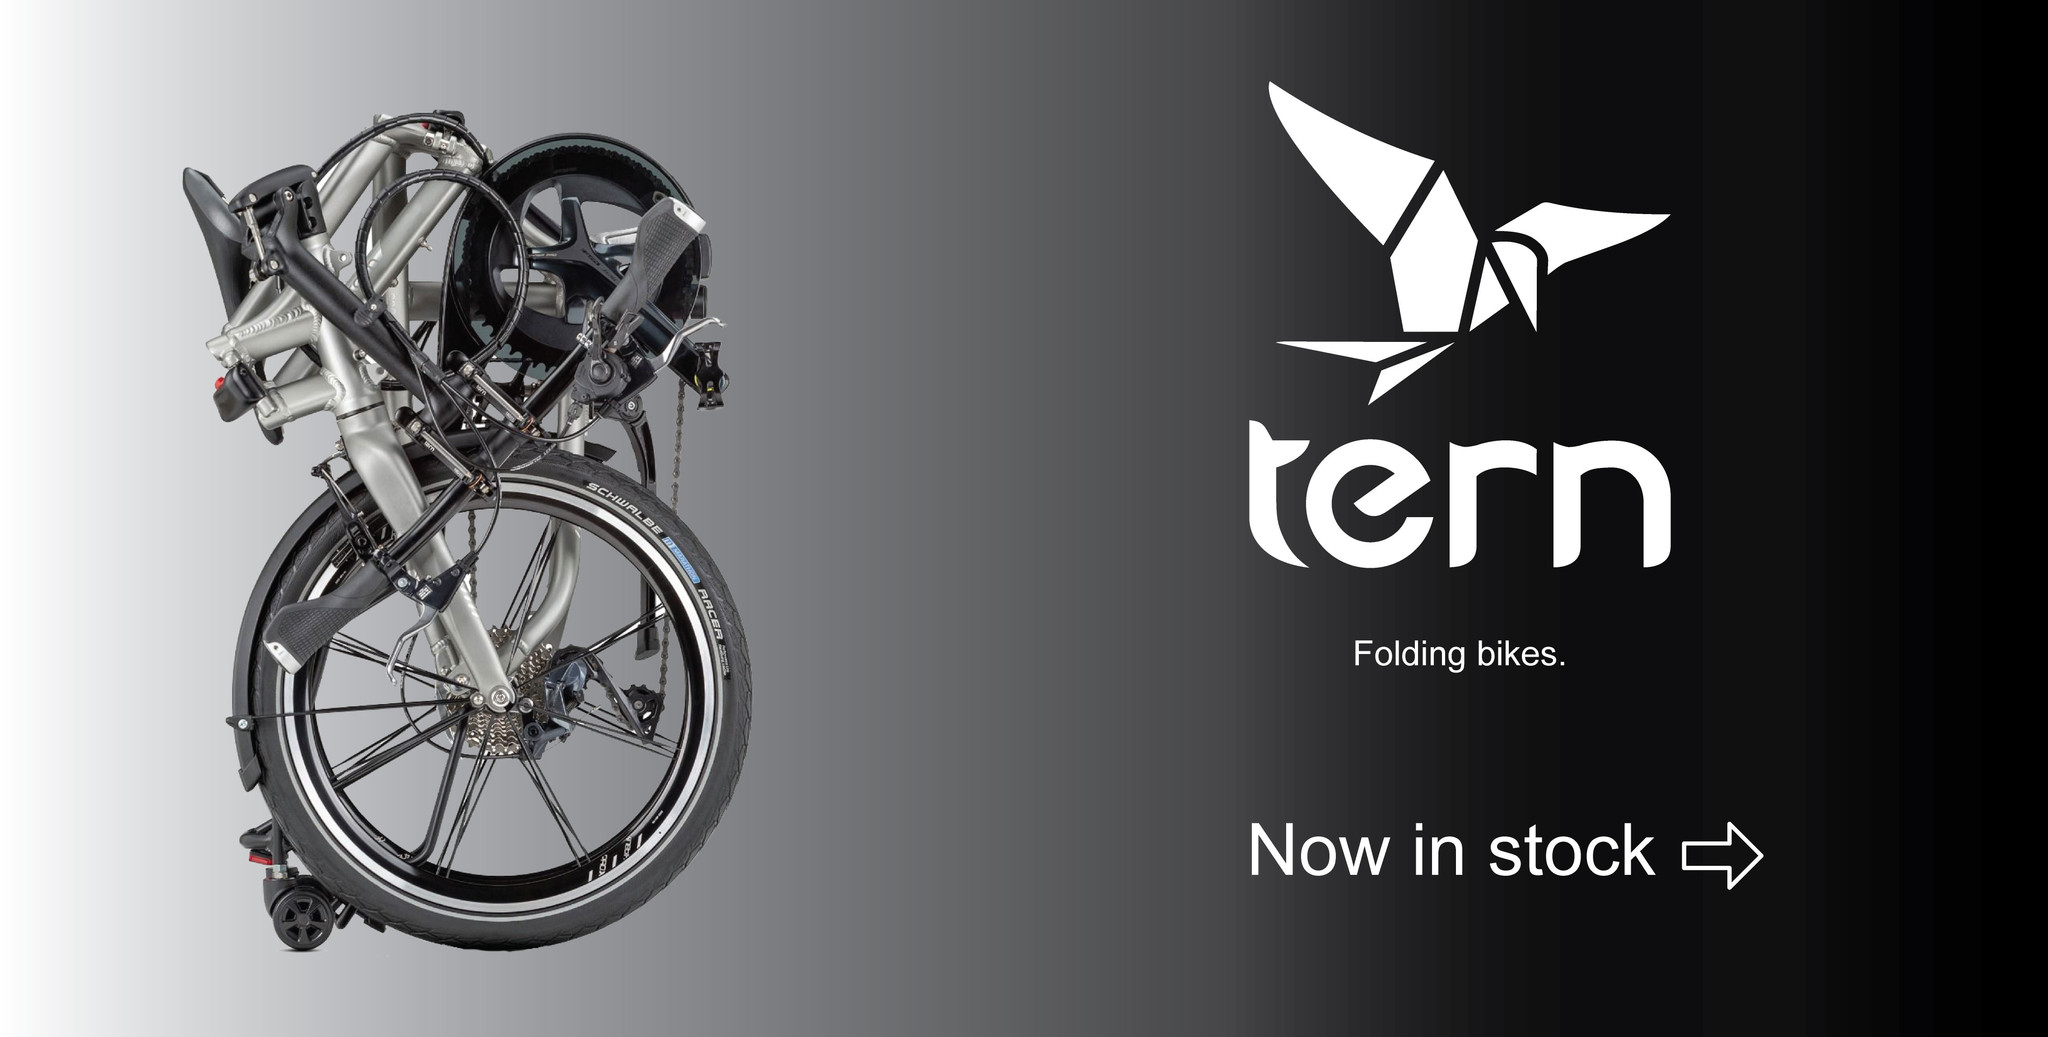 Tern bikes in stock